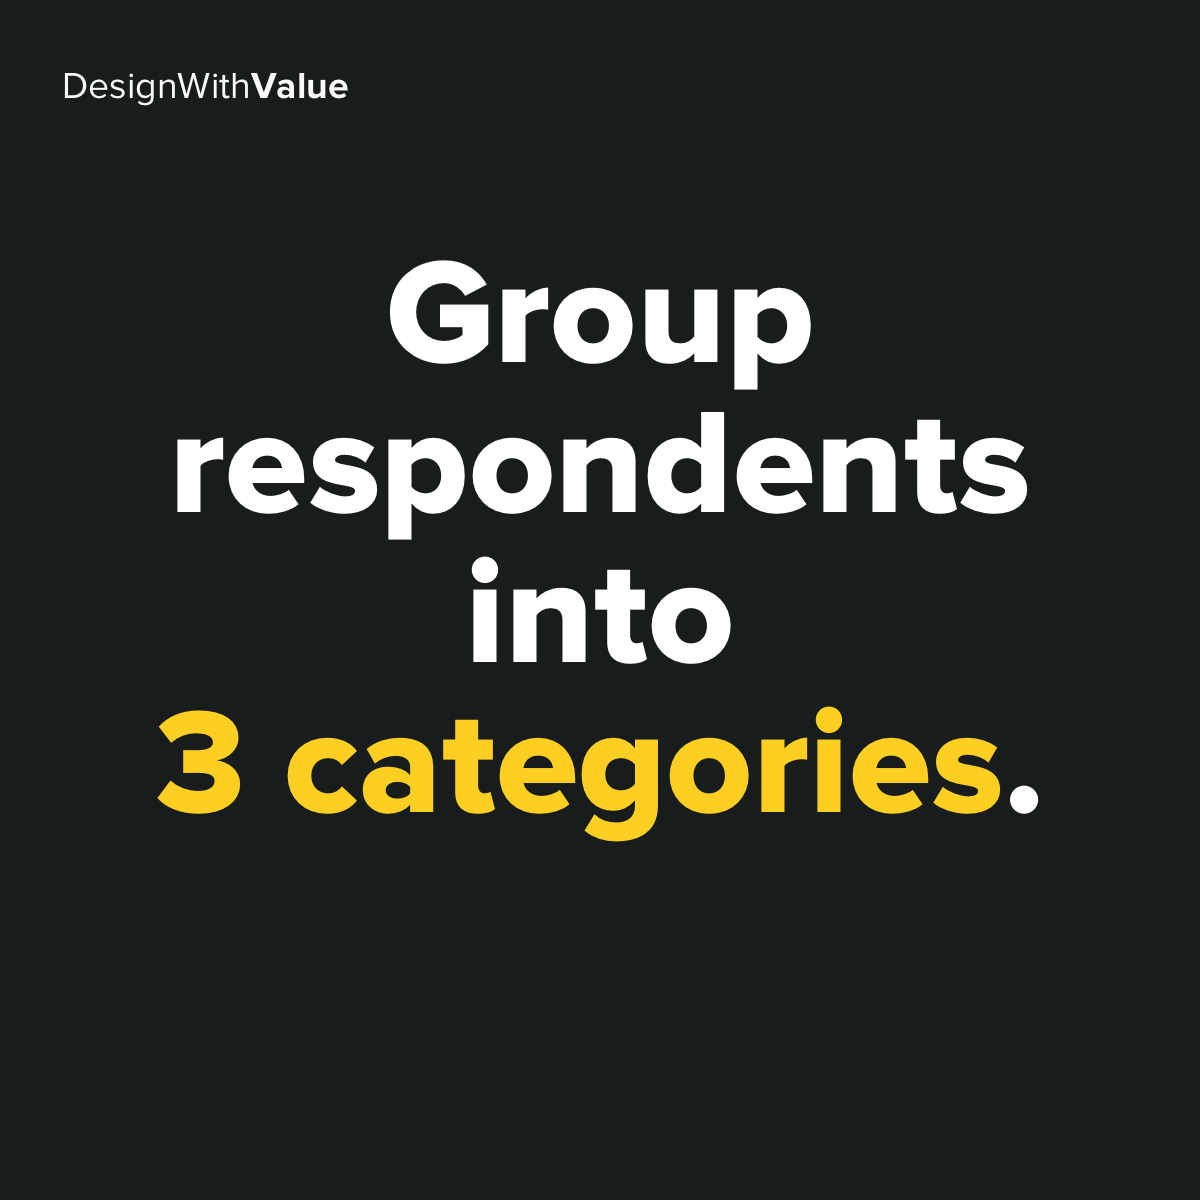 Group respondents into 3 categories.